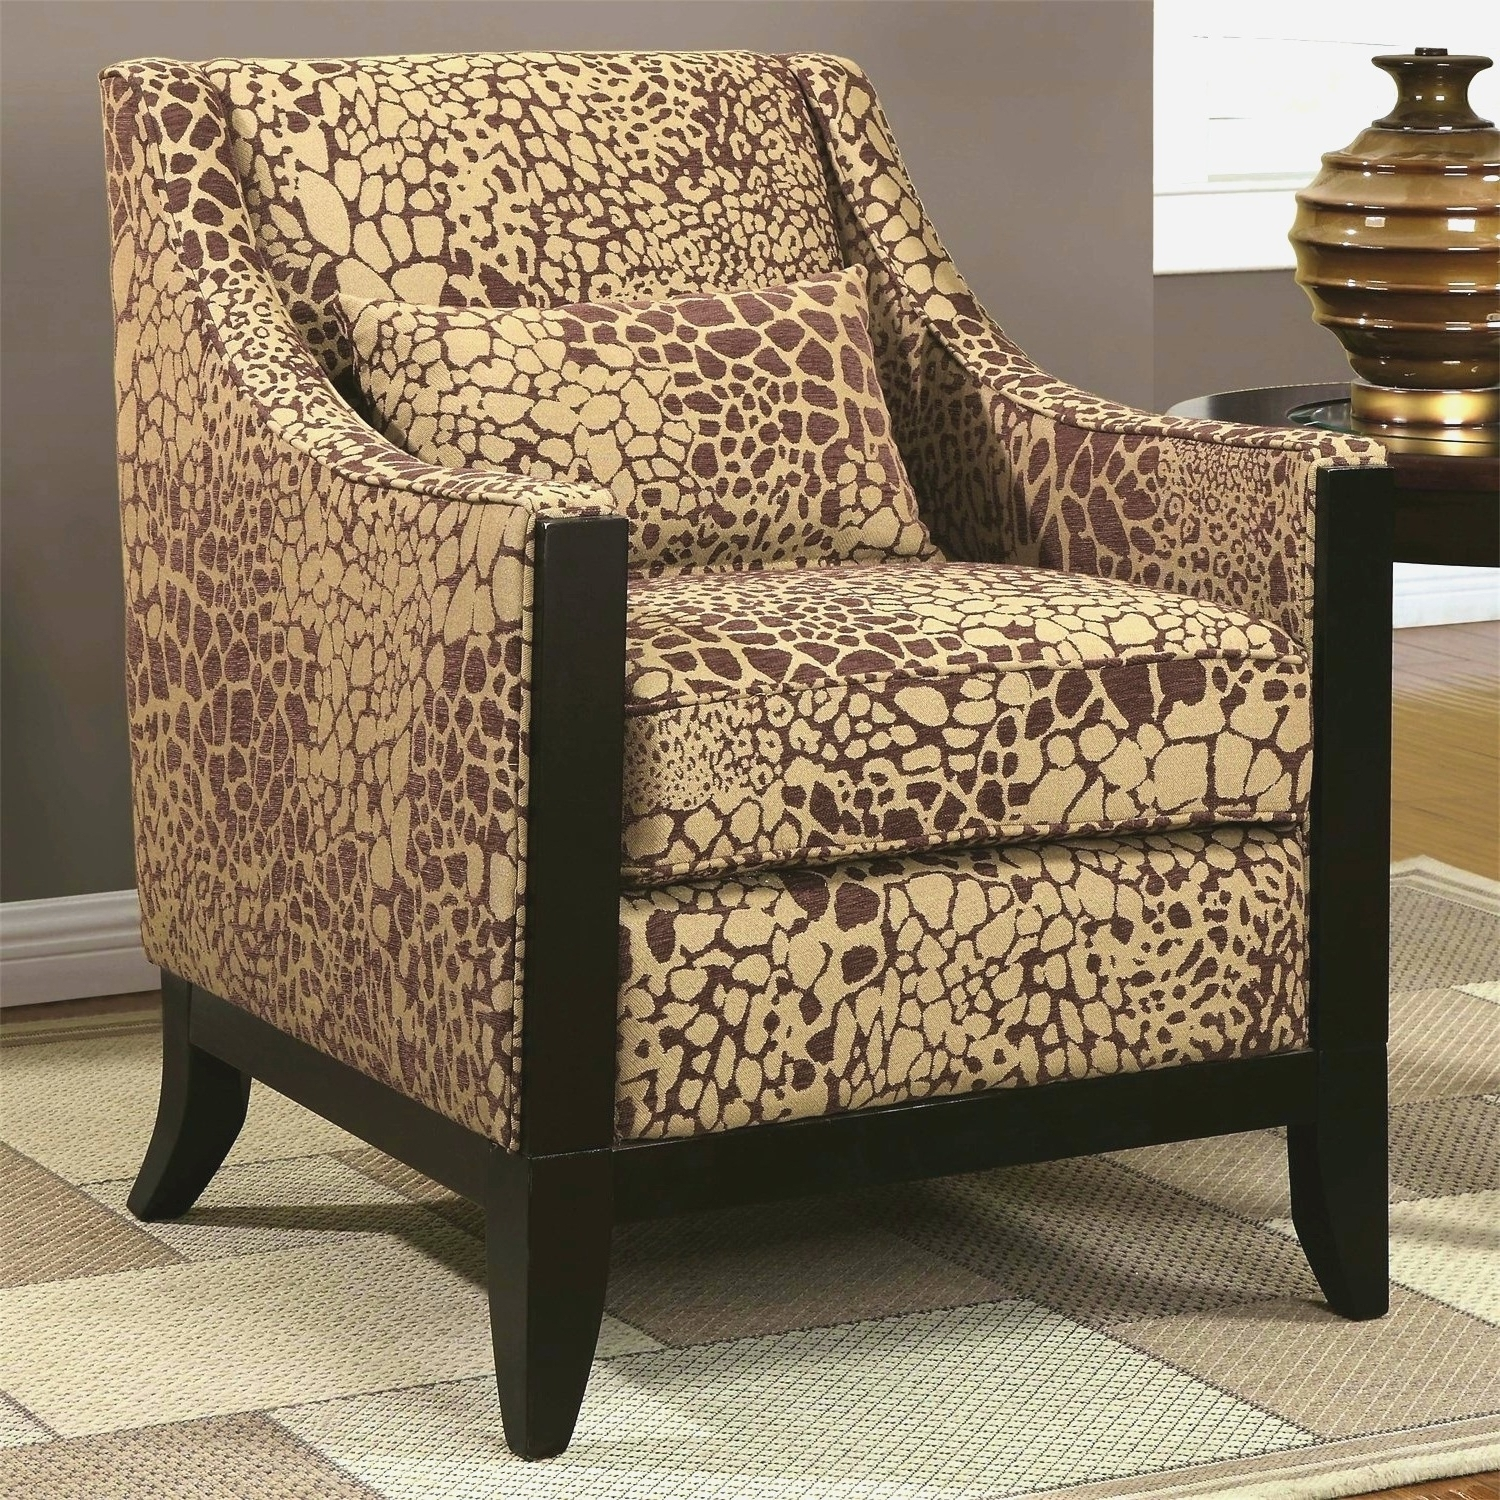 Leopard Print Chaise Lounge Chair • Lounge Chairs Ideas Regarding Trendy Leopard Print Chaise Lounges (View 5 of 15)